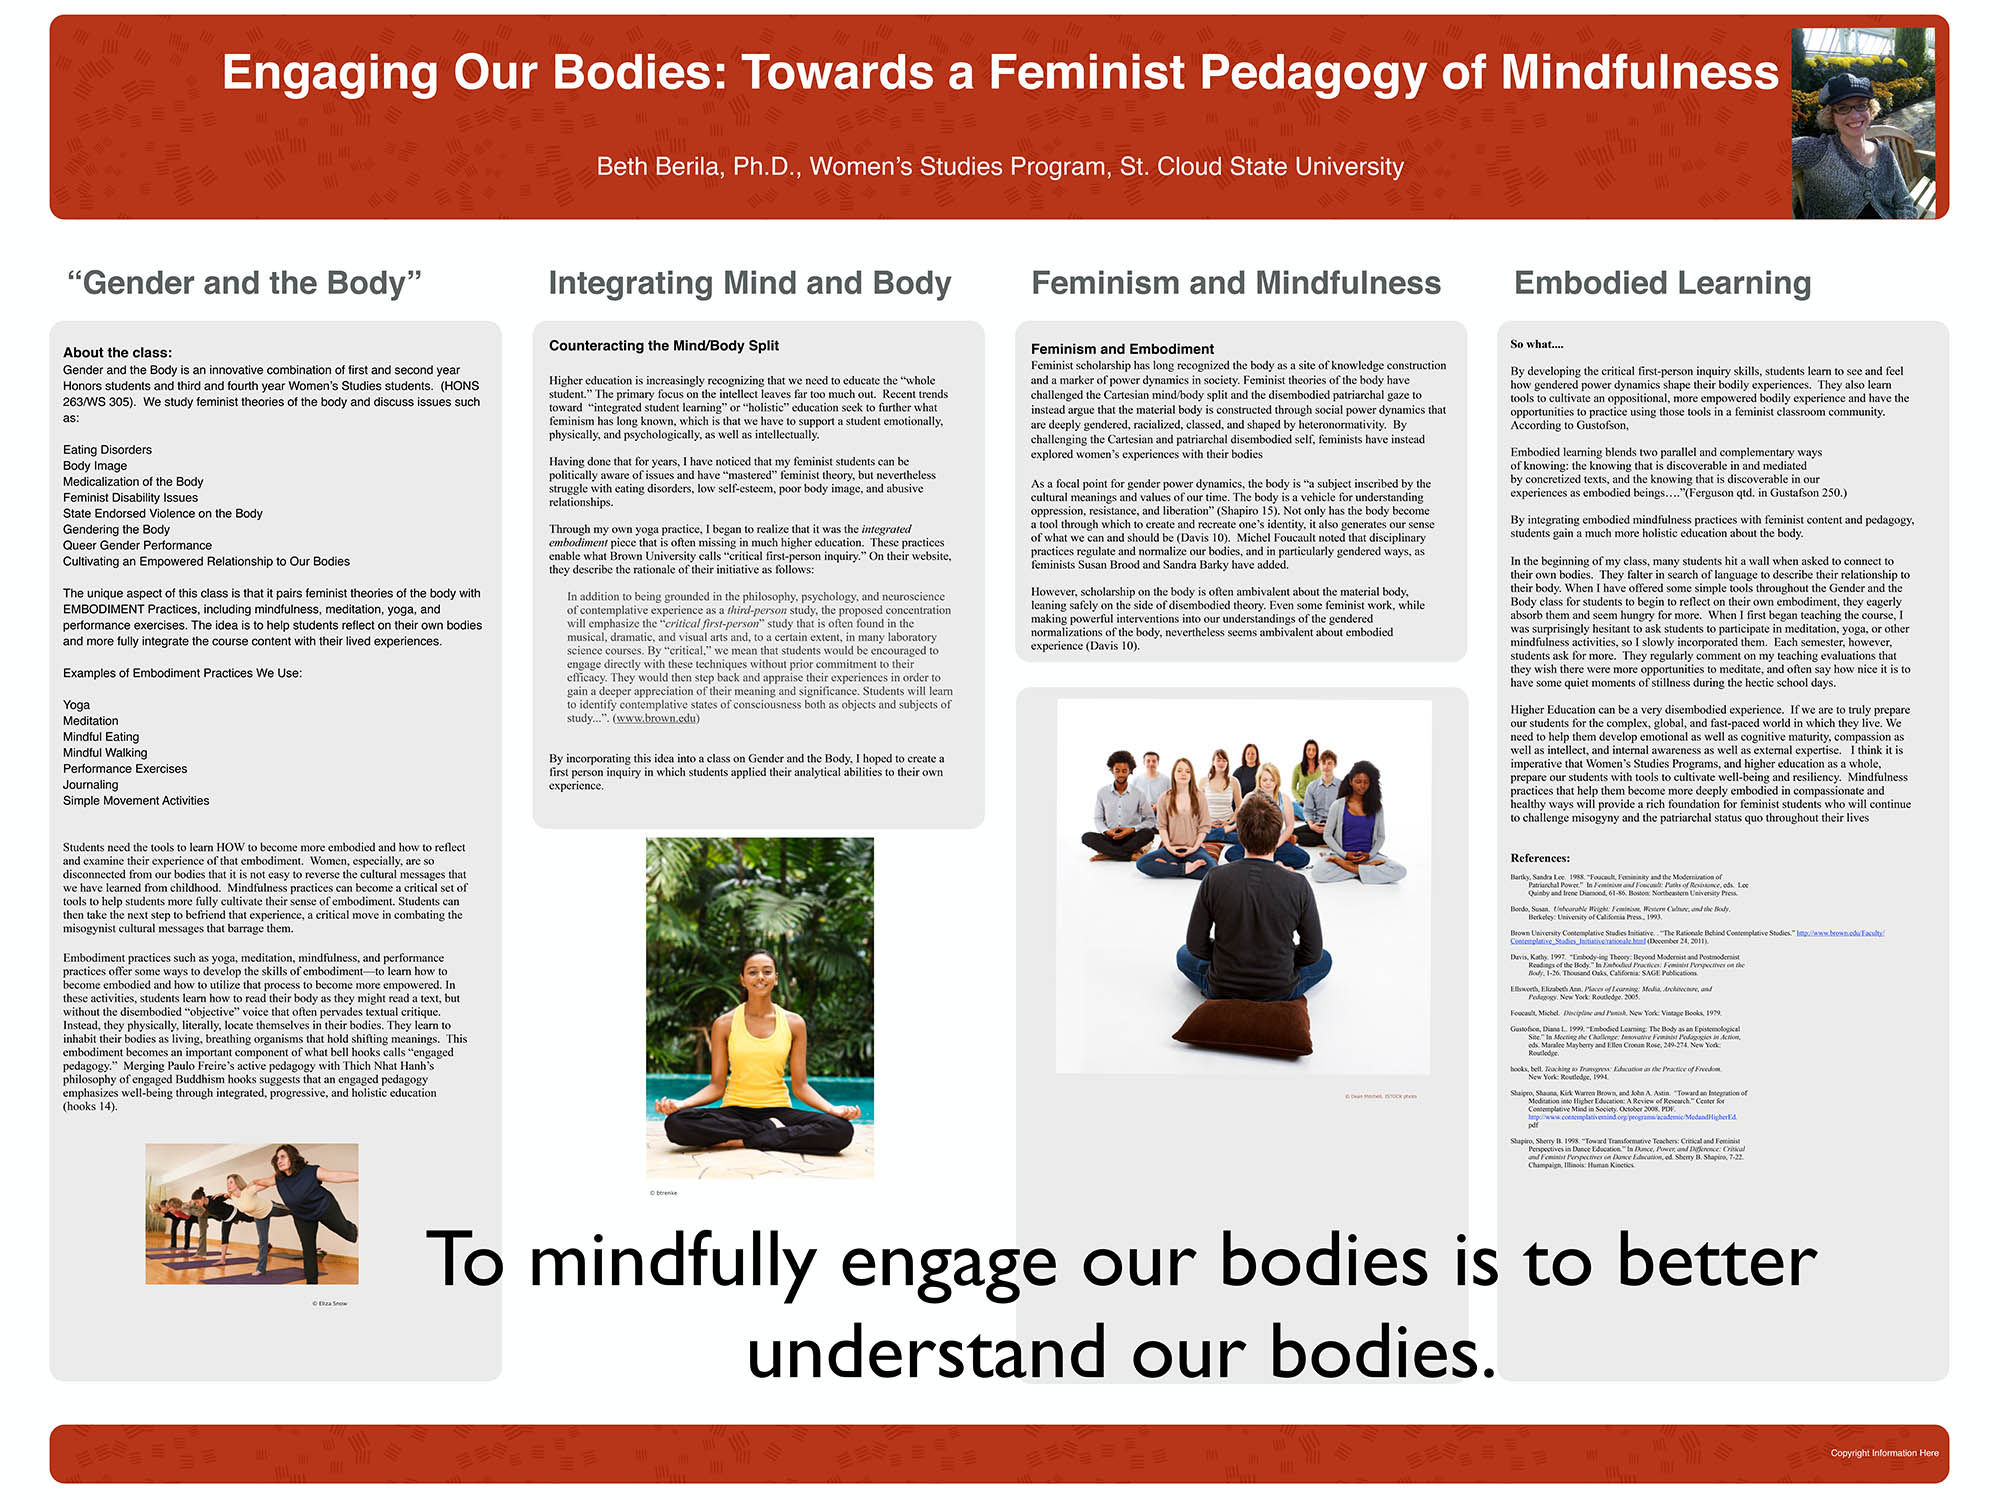 Engaging-Our-Bodies-Poster.jpg